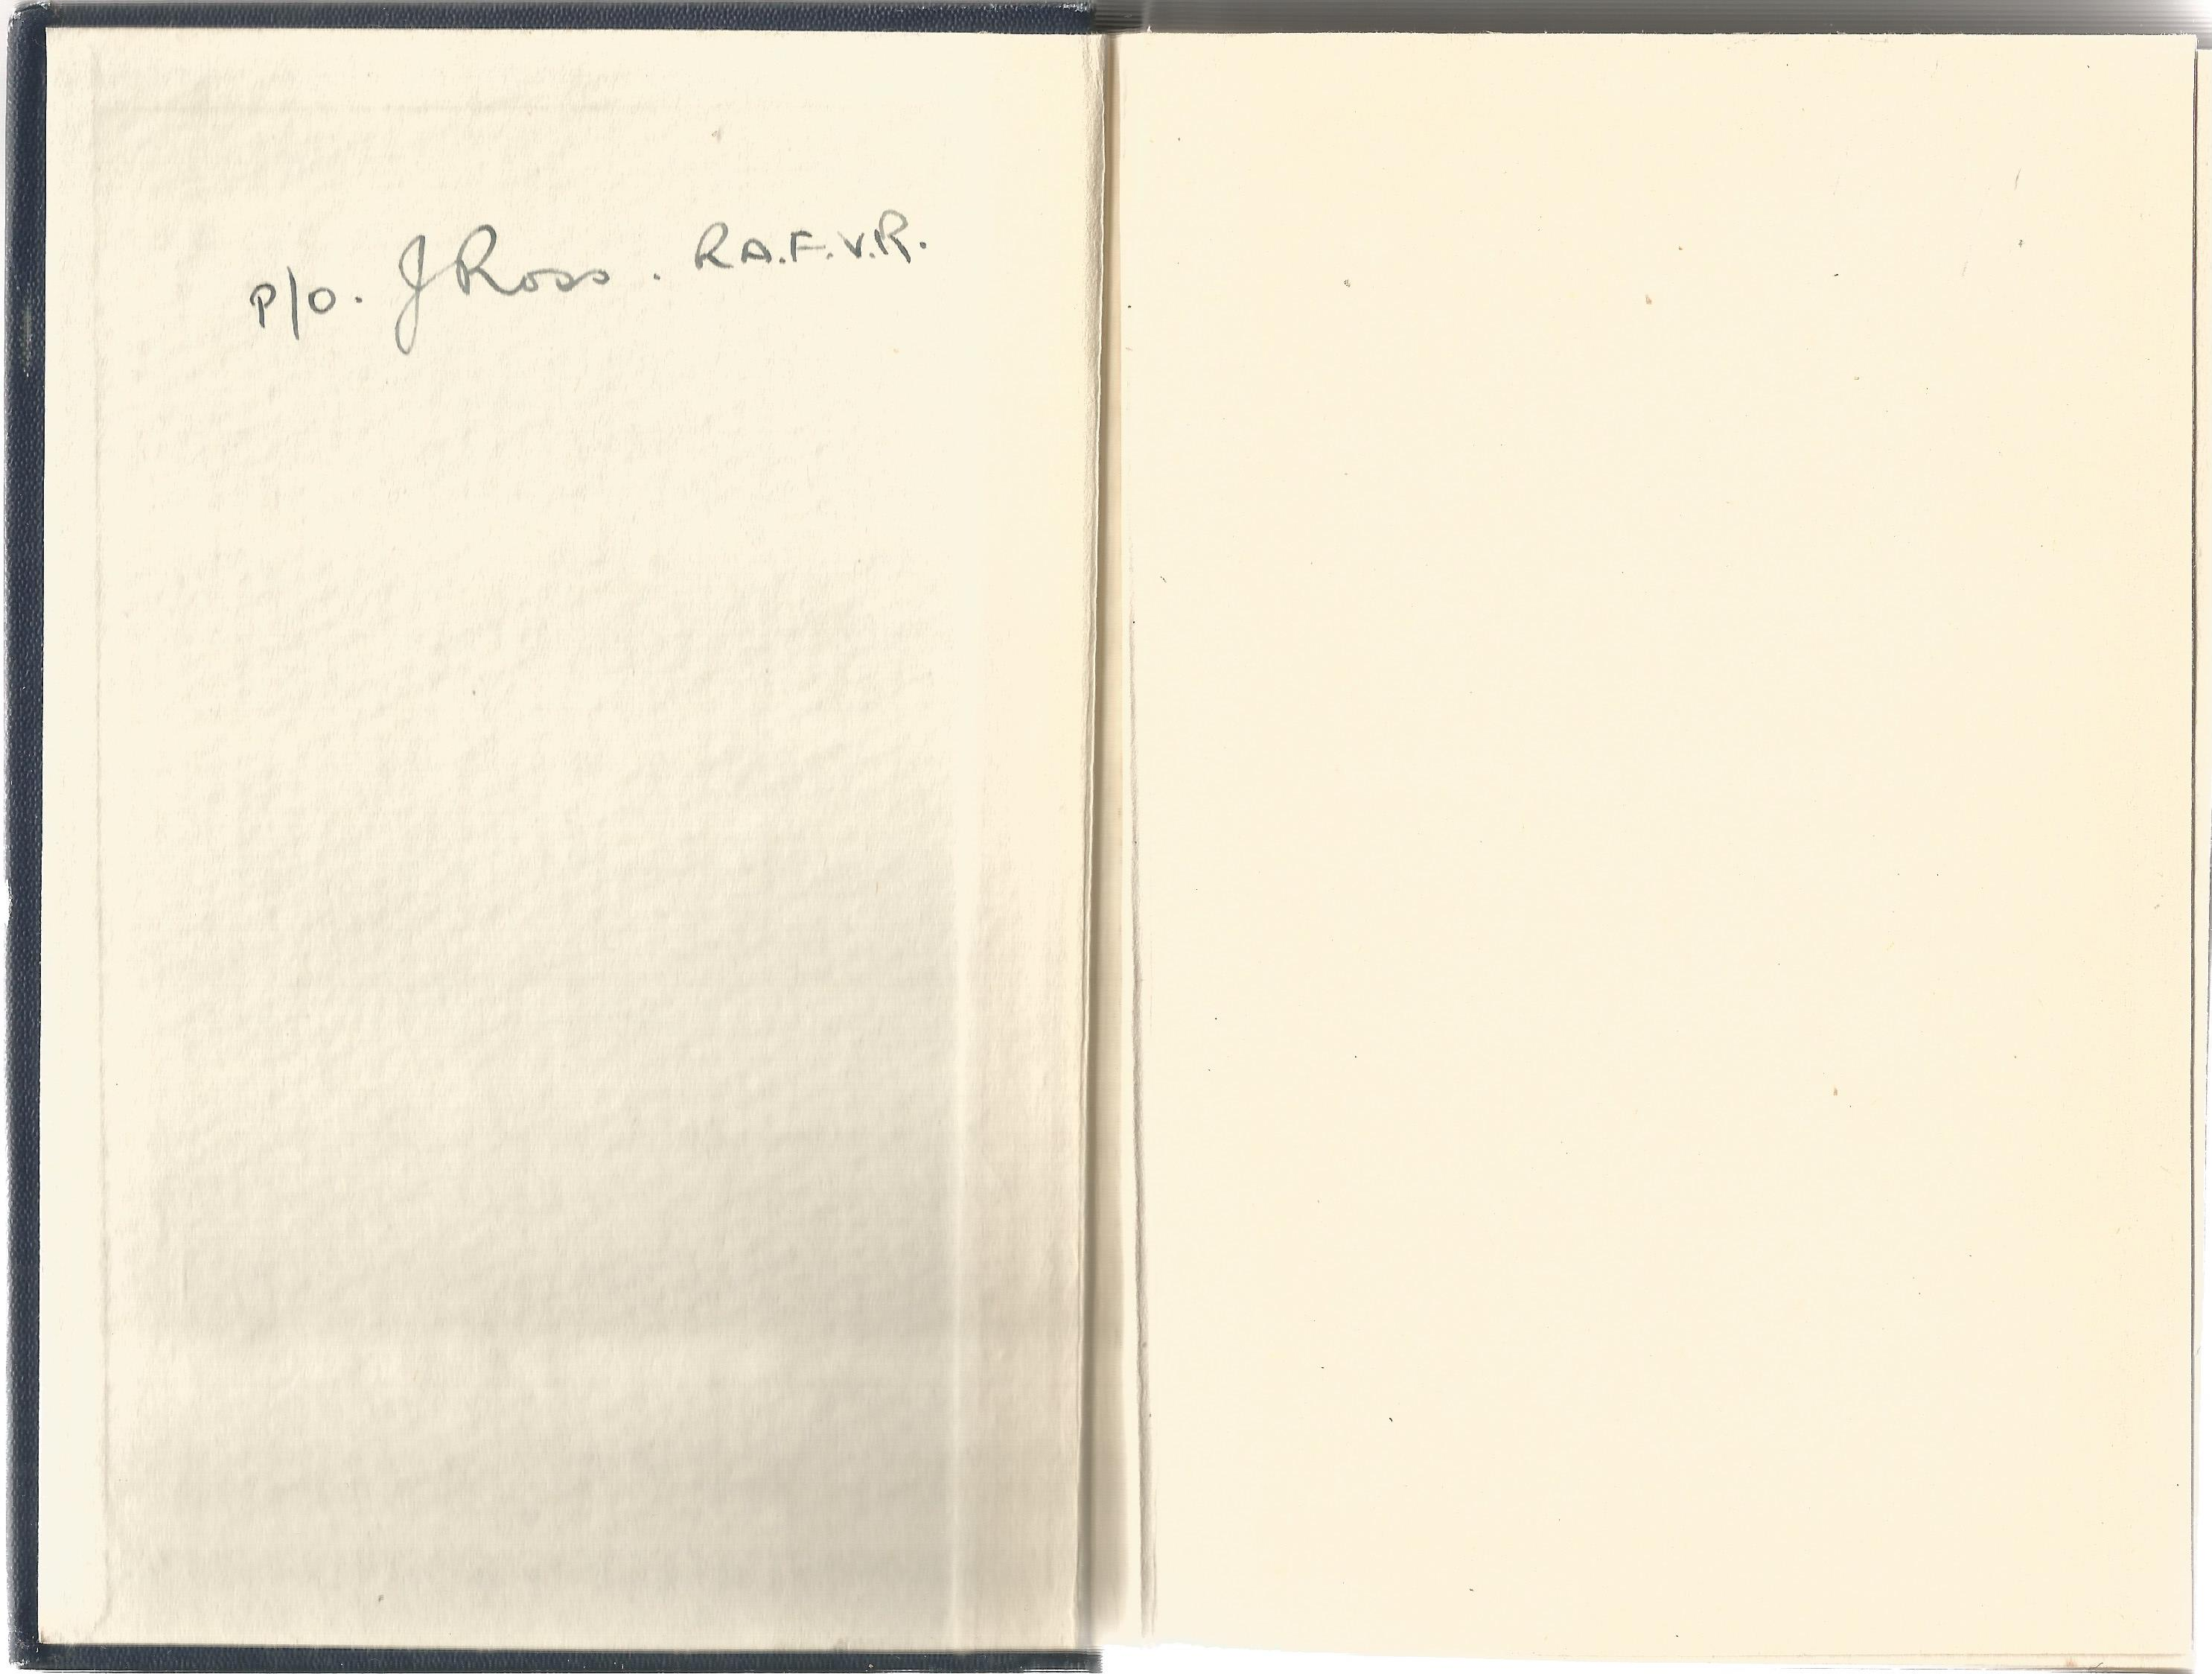 Frank A Swoffer MBE. Learning To Fly. A Fith Edition hardback book. Signed by P/O J Ross RAF.VR, - Image 3 of 3